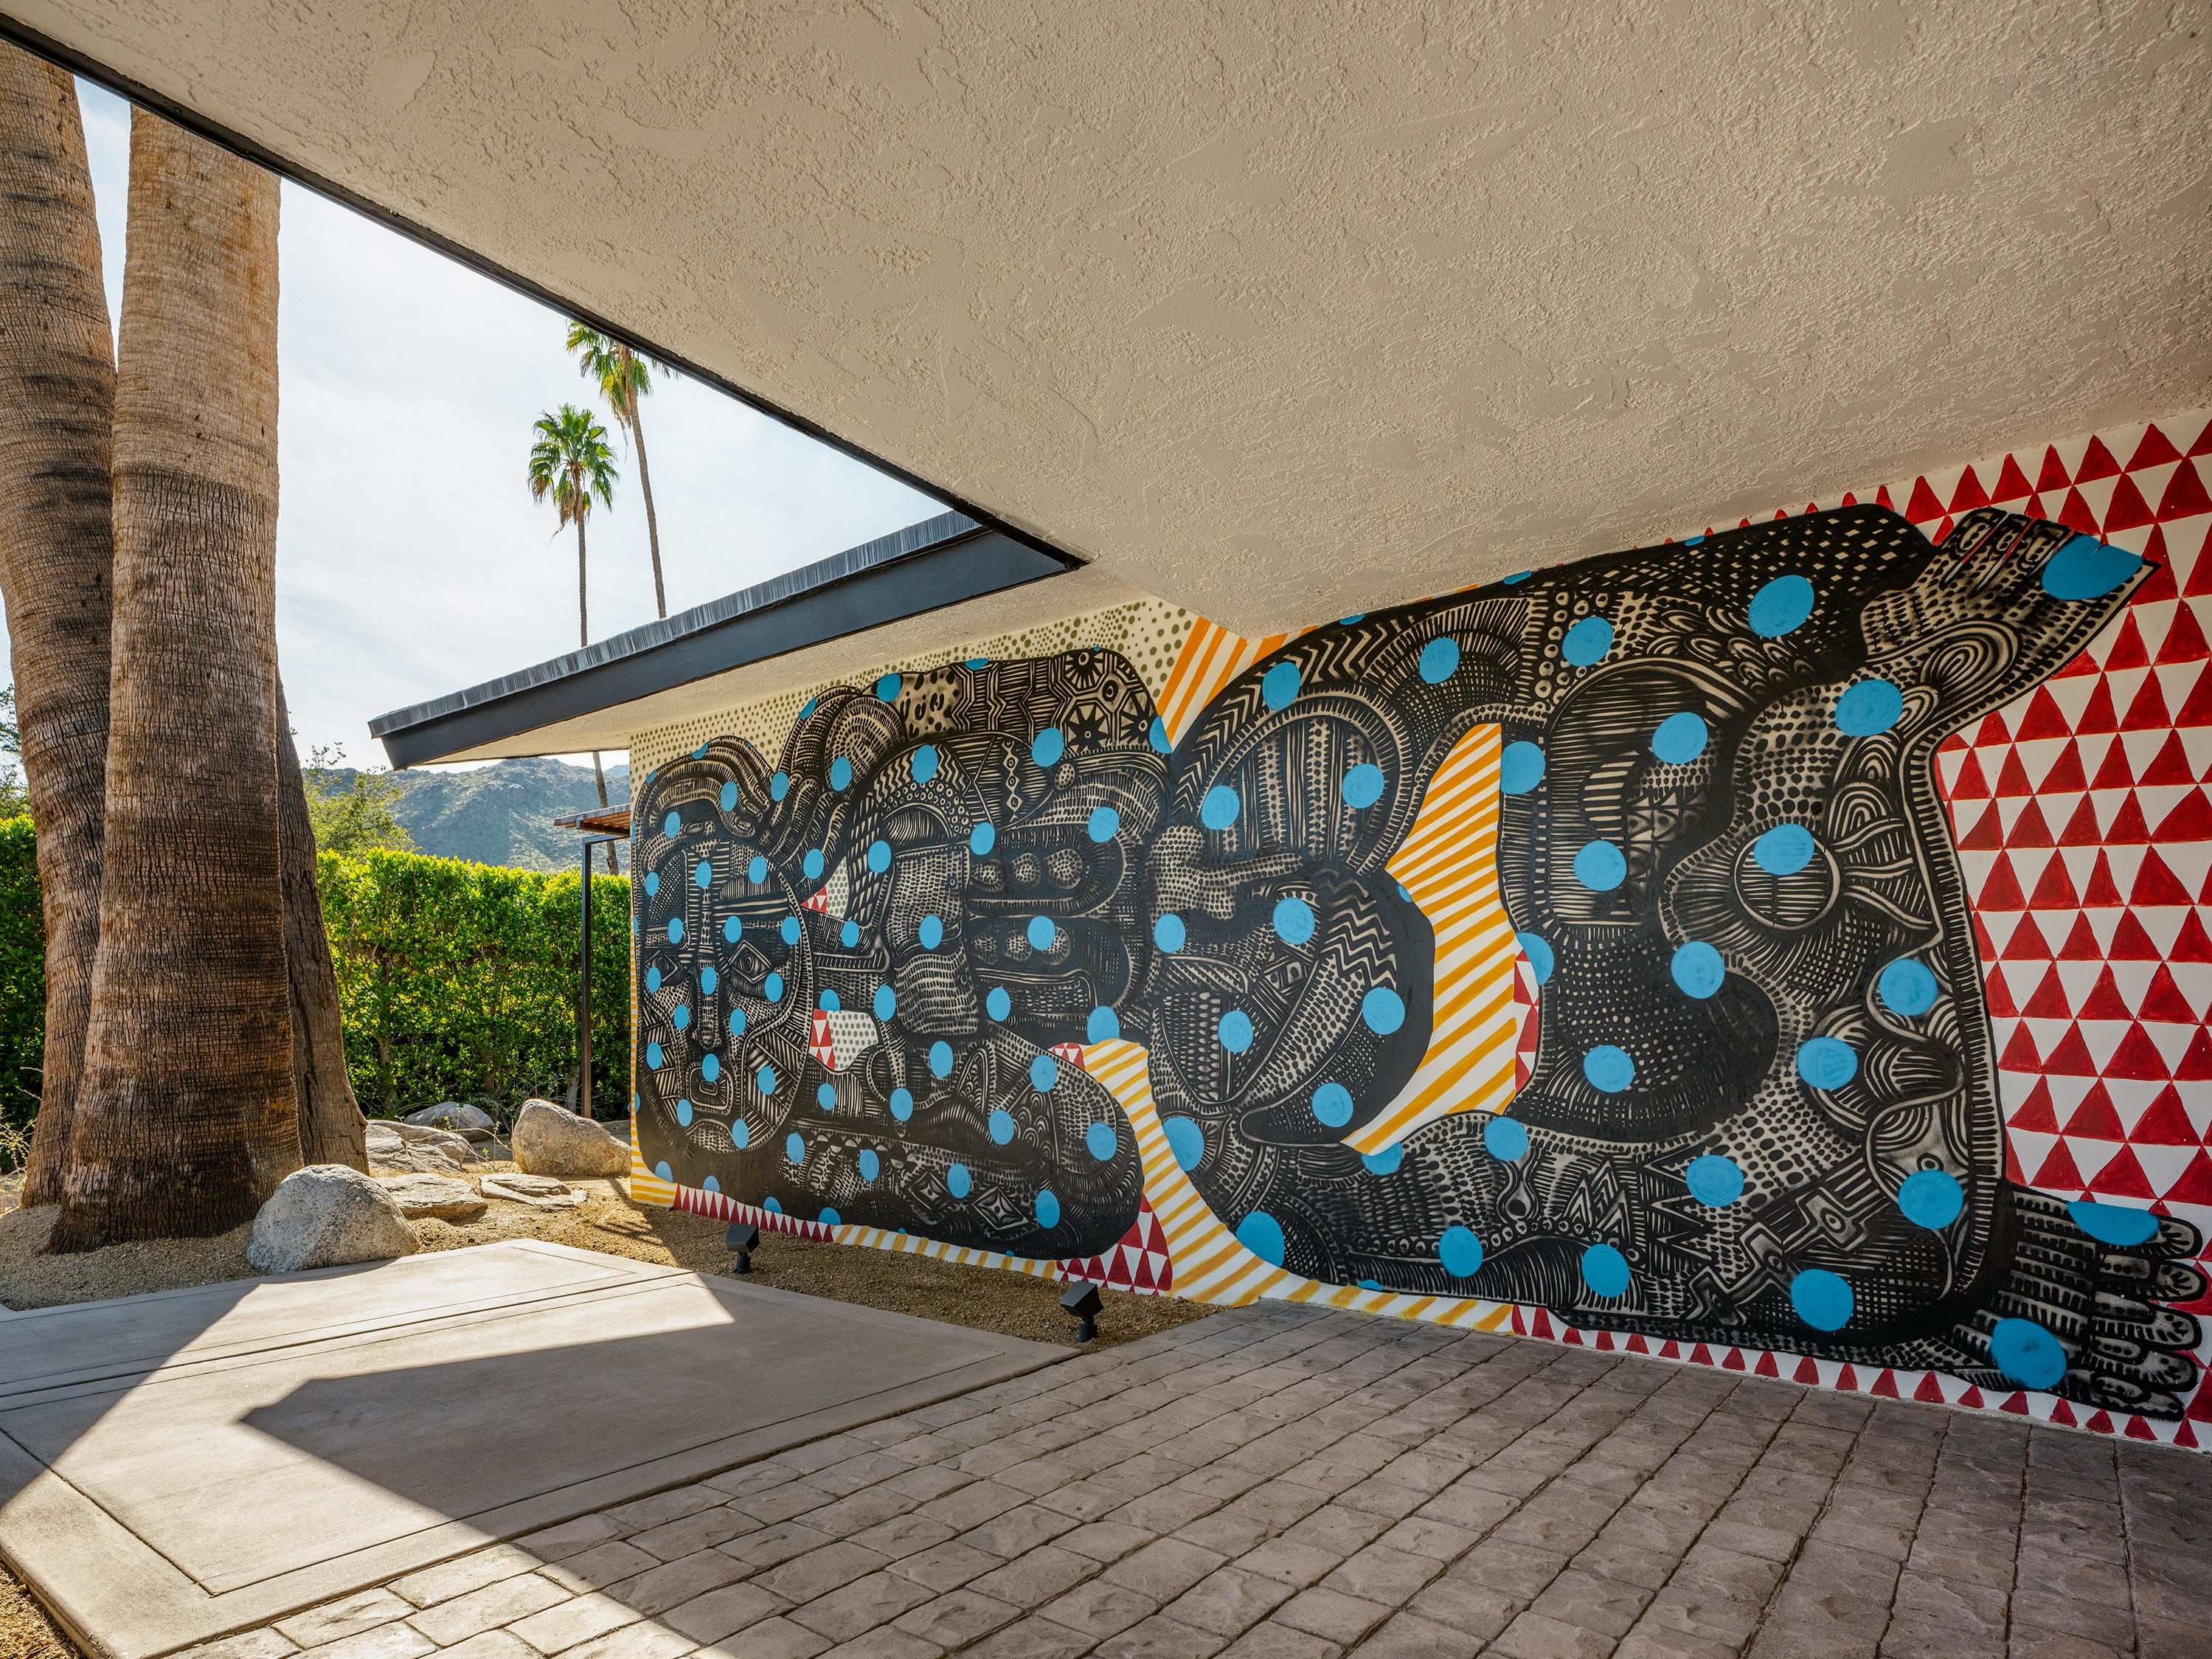 Zio Ziegler completed the murals at this Palm Springs ranch-style property owned by Tod Mostero.